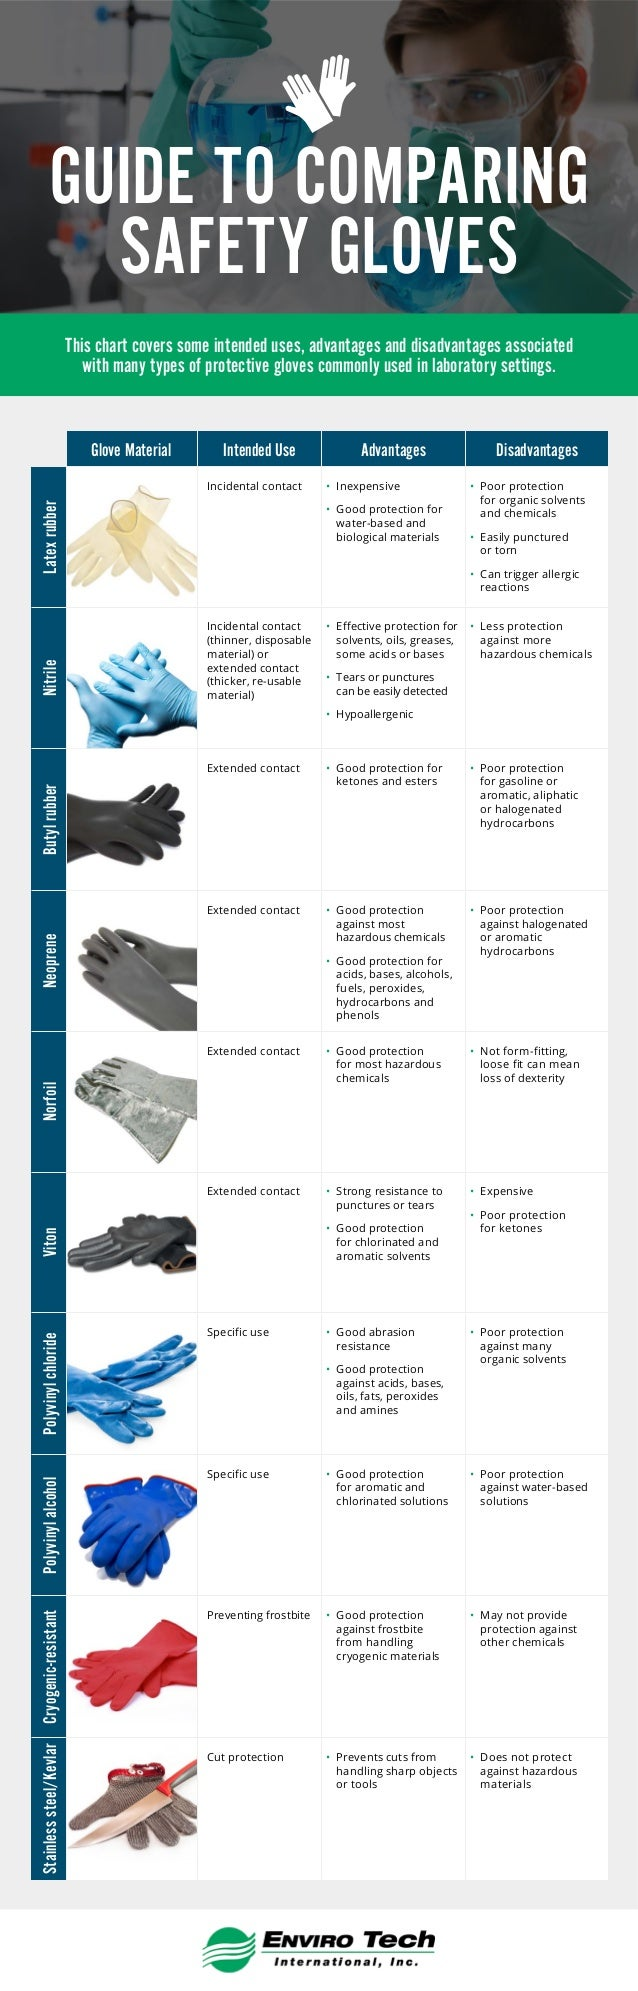 GUIDE TO COMPARING SAFETY GLOVES Glove Material Intended Use Advantages Disadvantages Latexrubber Incidental contact • Ine...